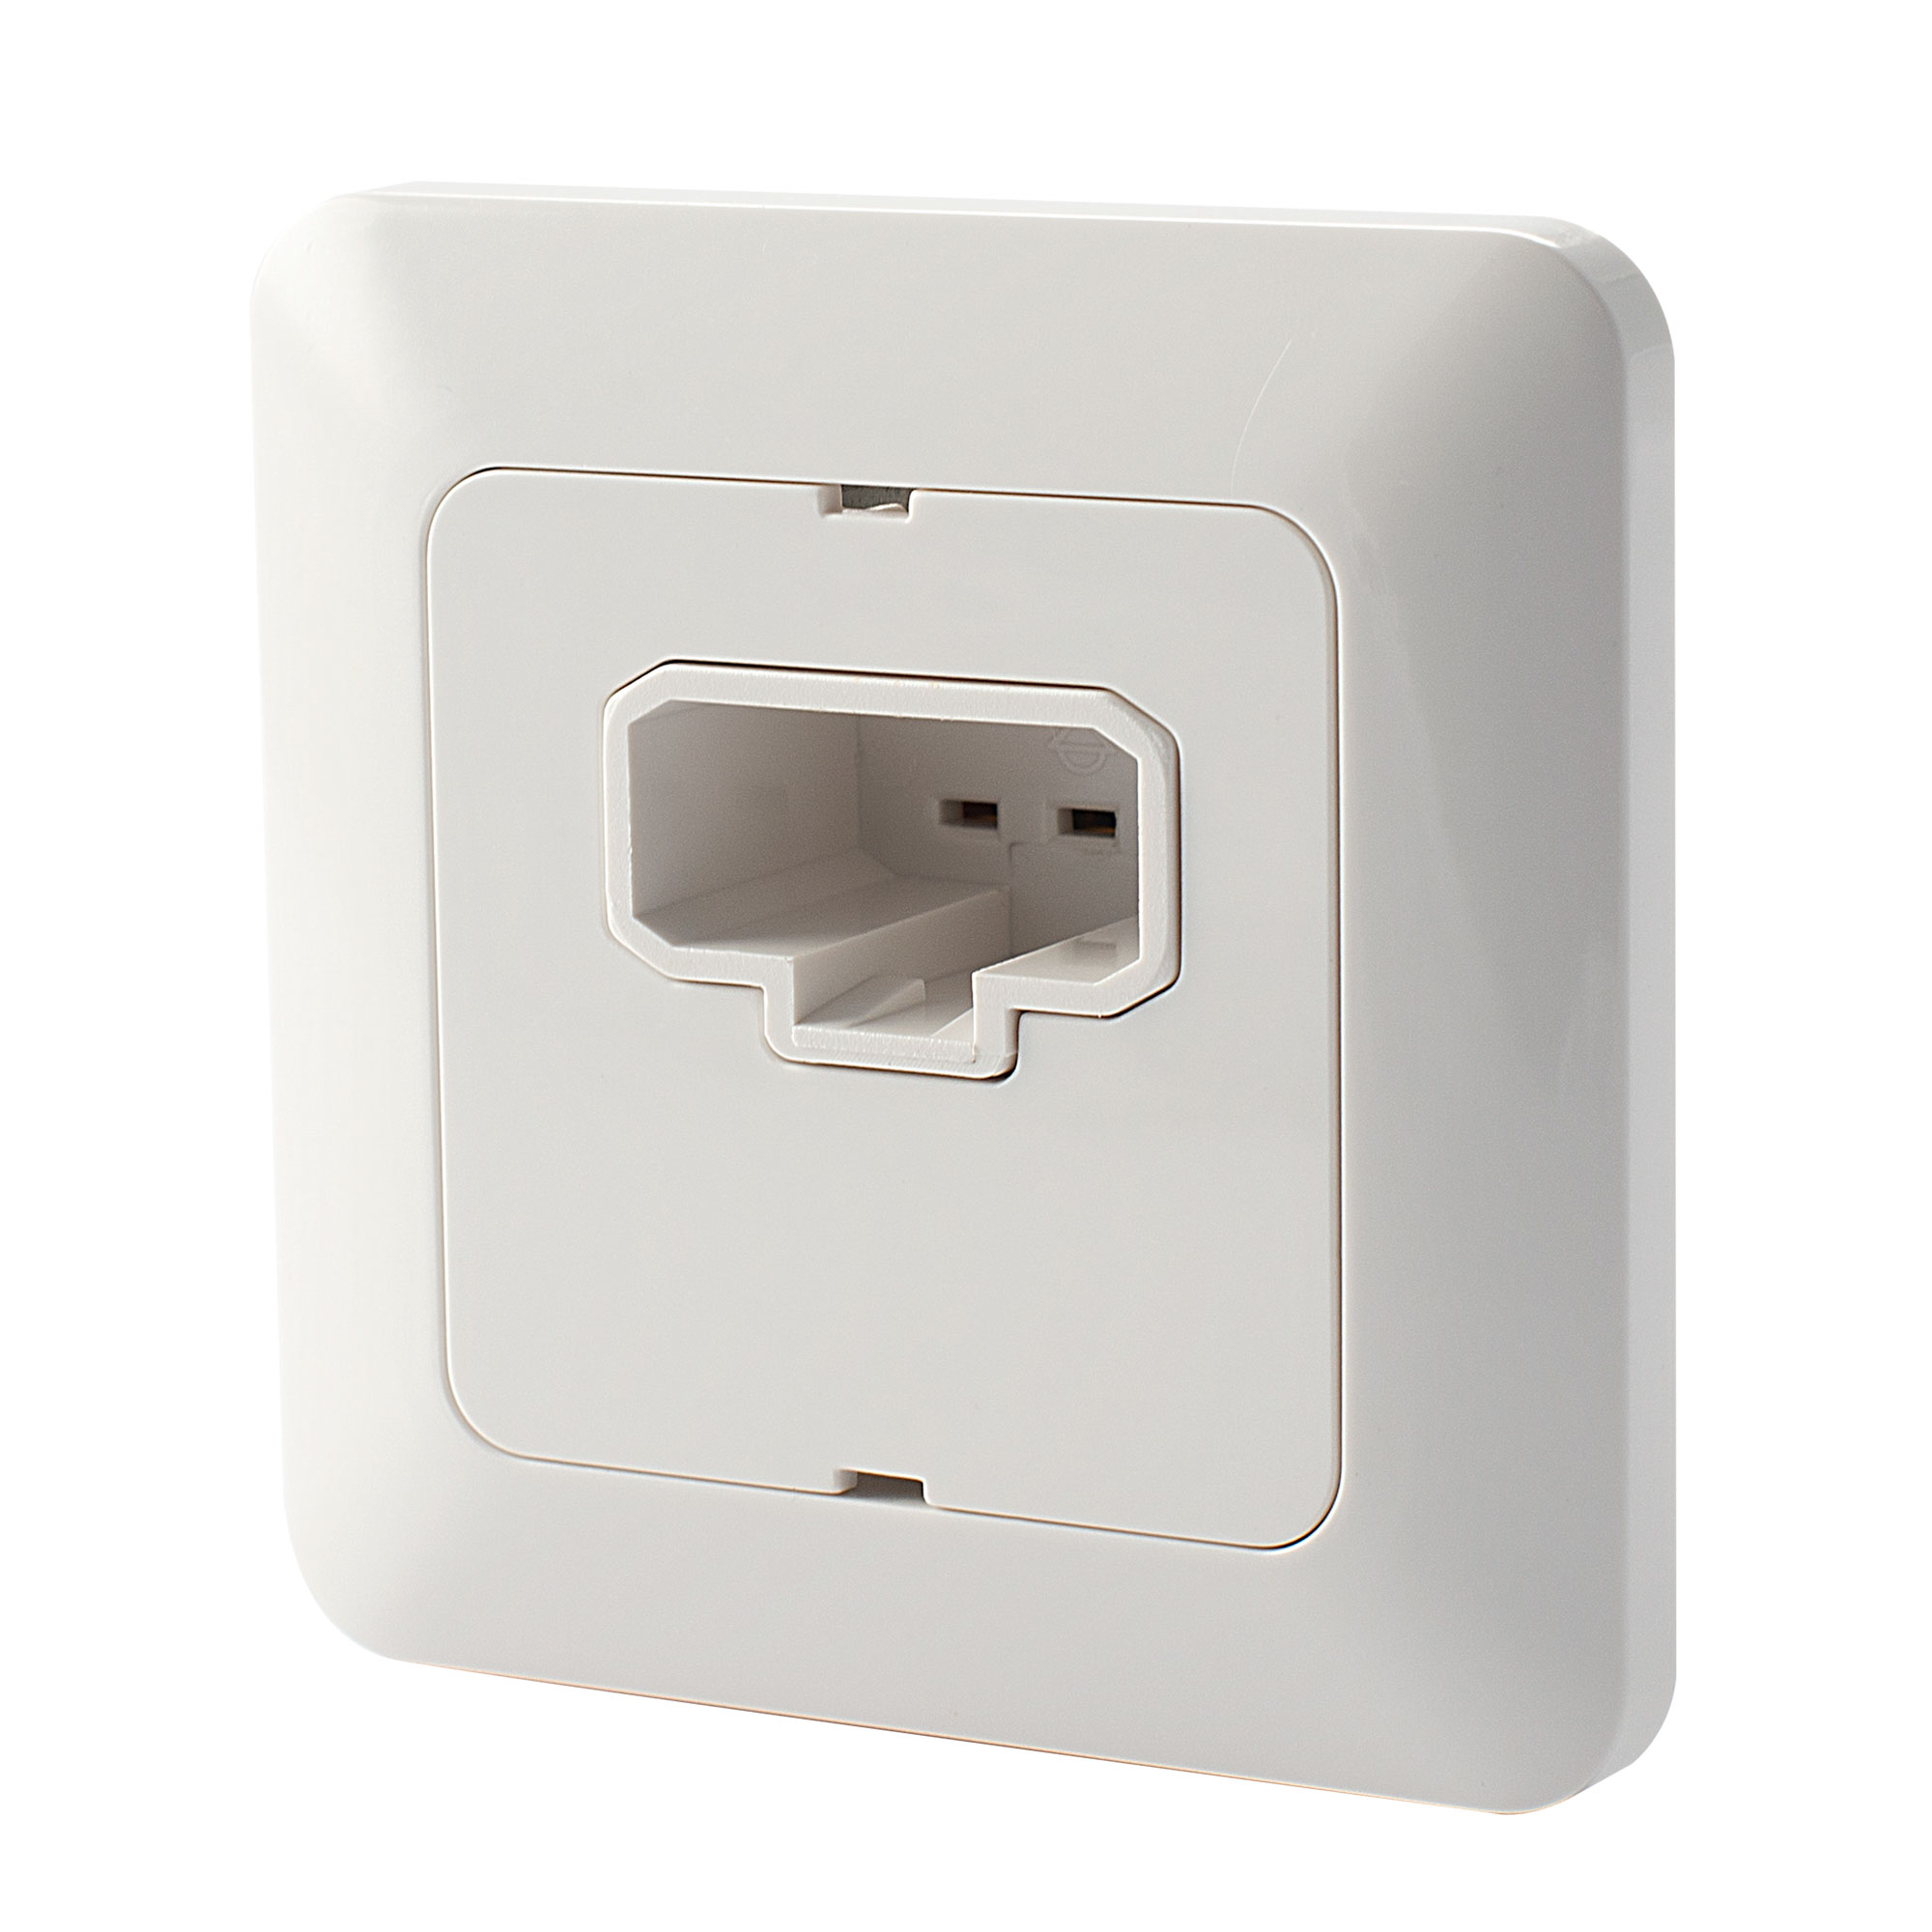 DCL LAMP PLUGS AND SOCKETS